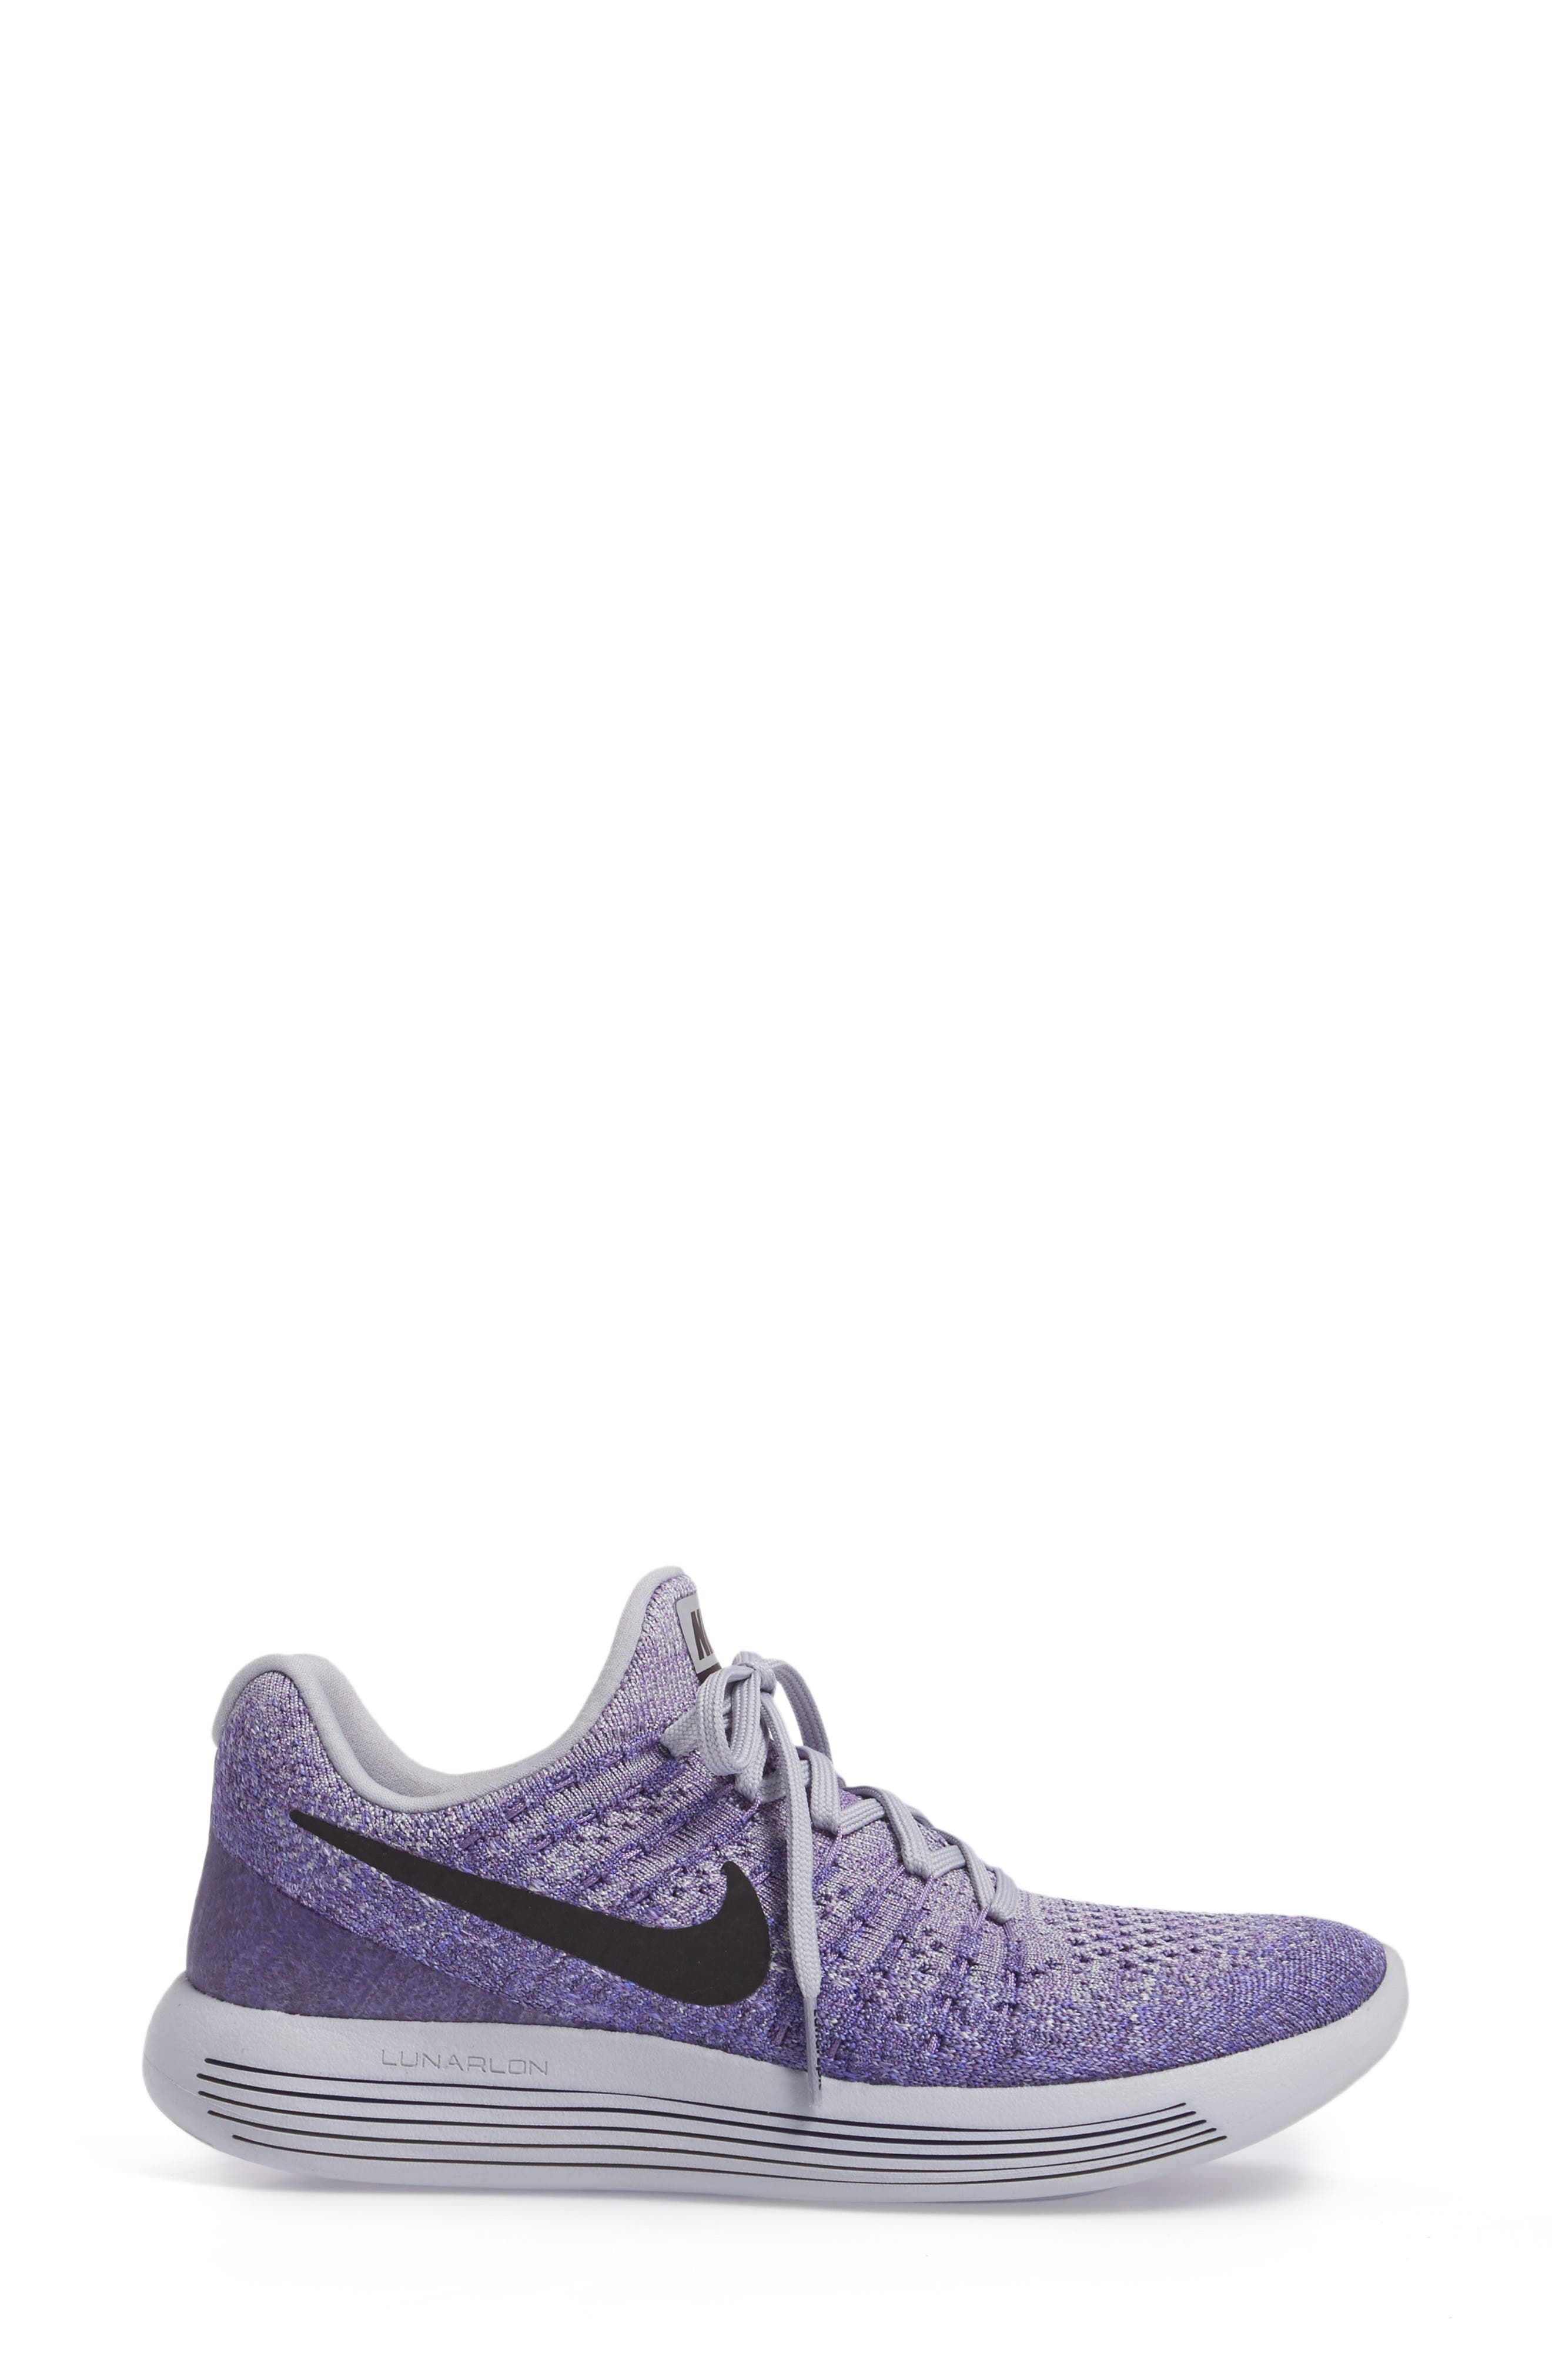 ,                             LunarEpic Low Flyknit 2 Running Shoe,                             Alternate thumbnail 103, color,                             511